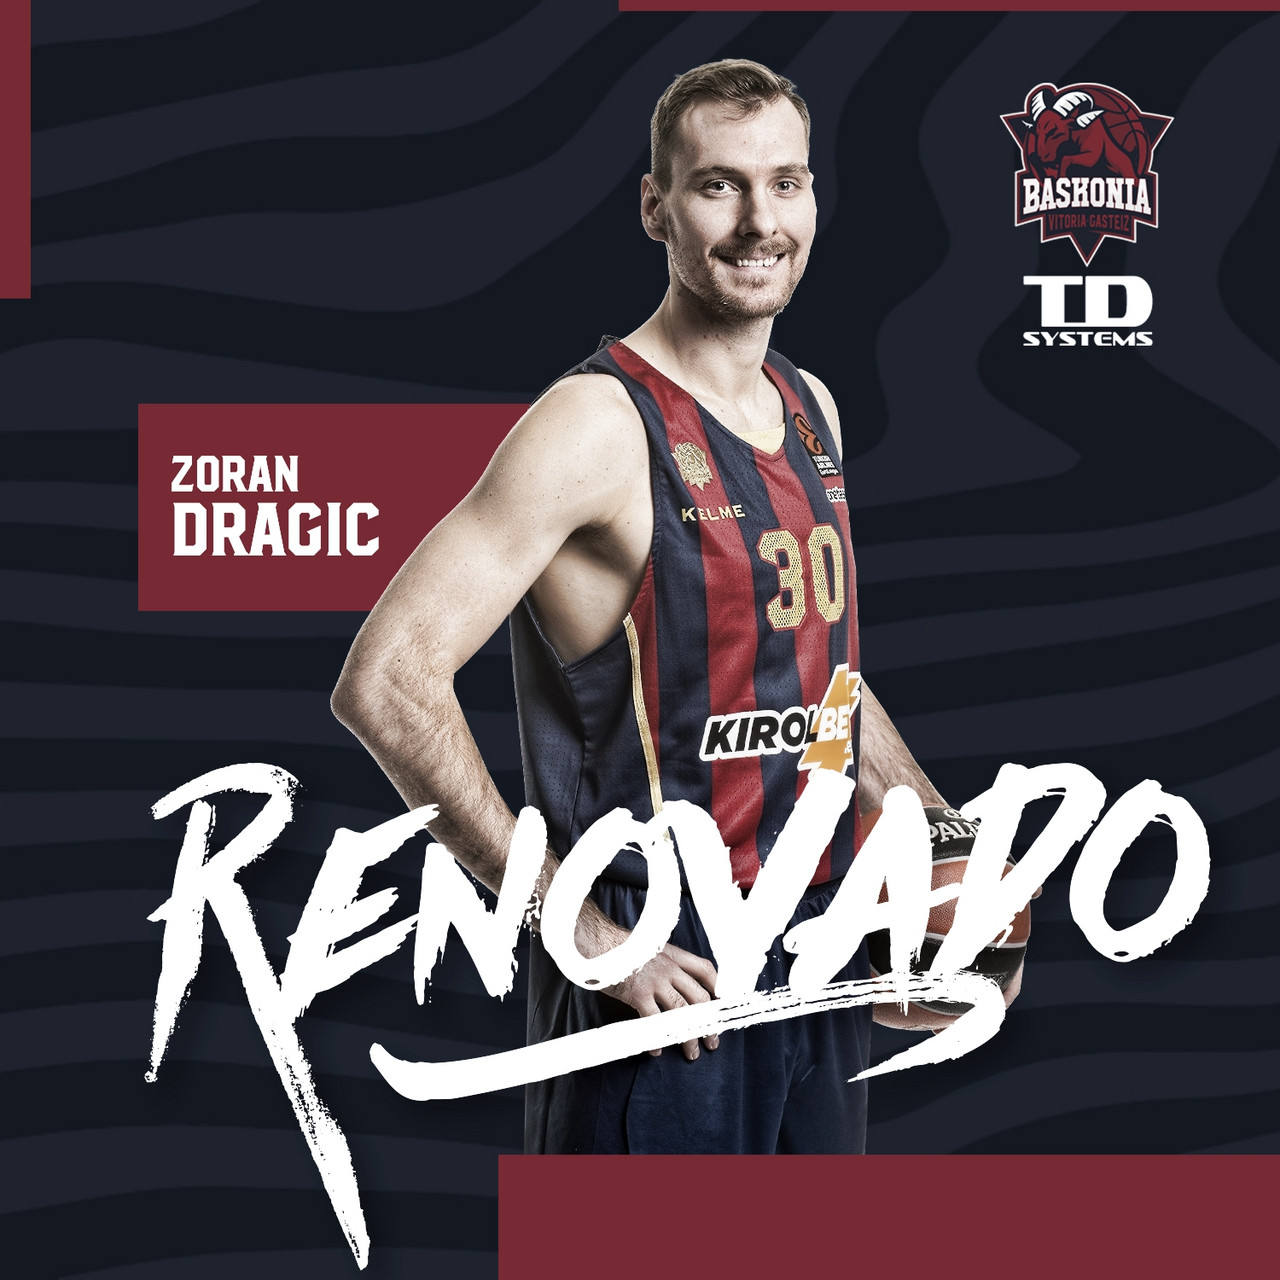 Zoran Dragic, baskonista hasta 2021